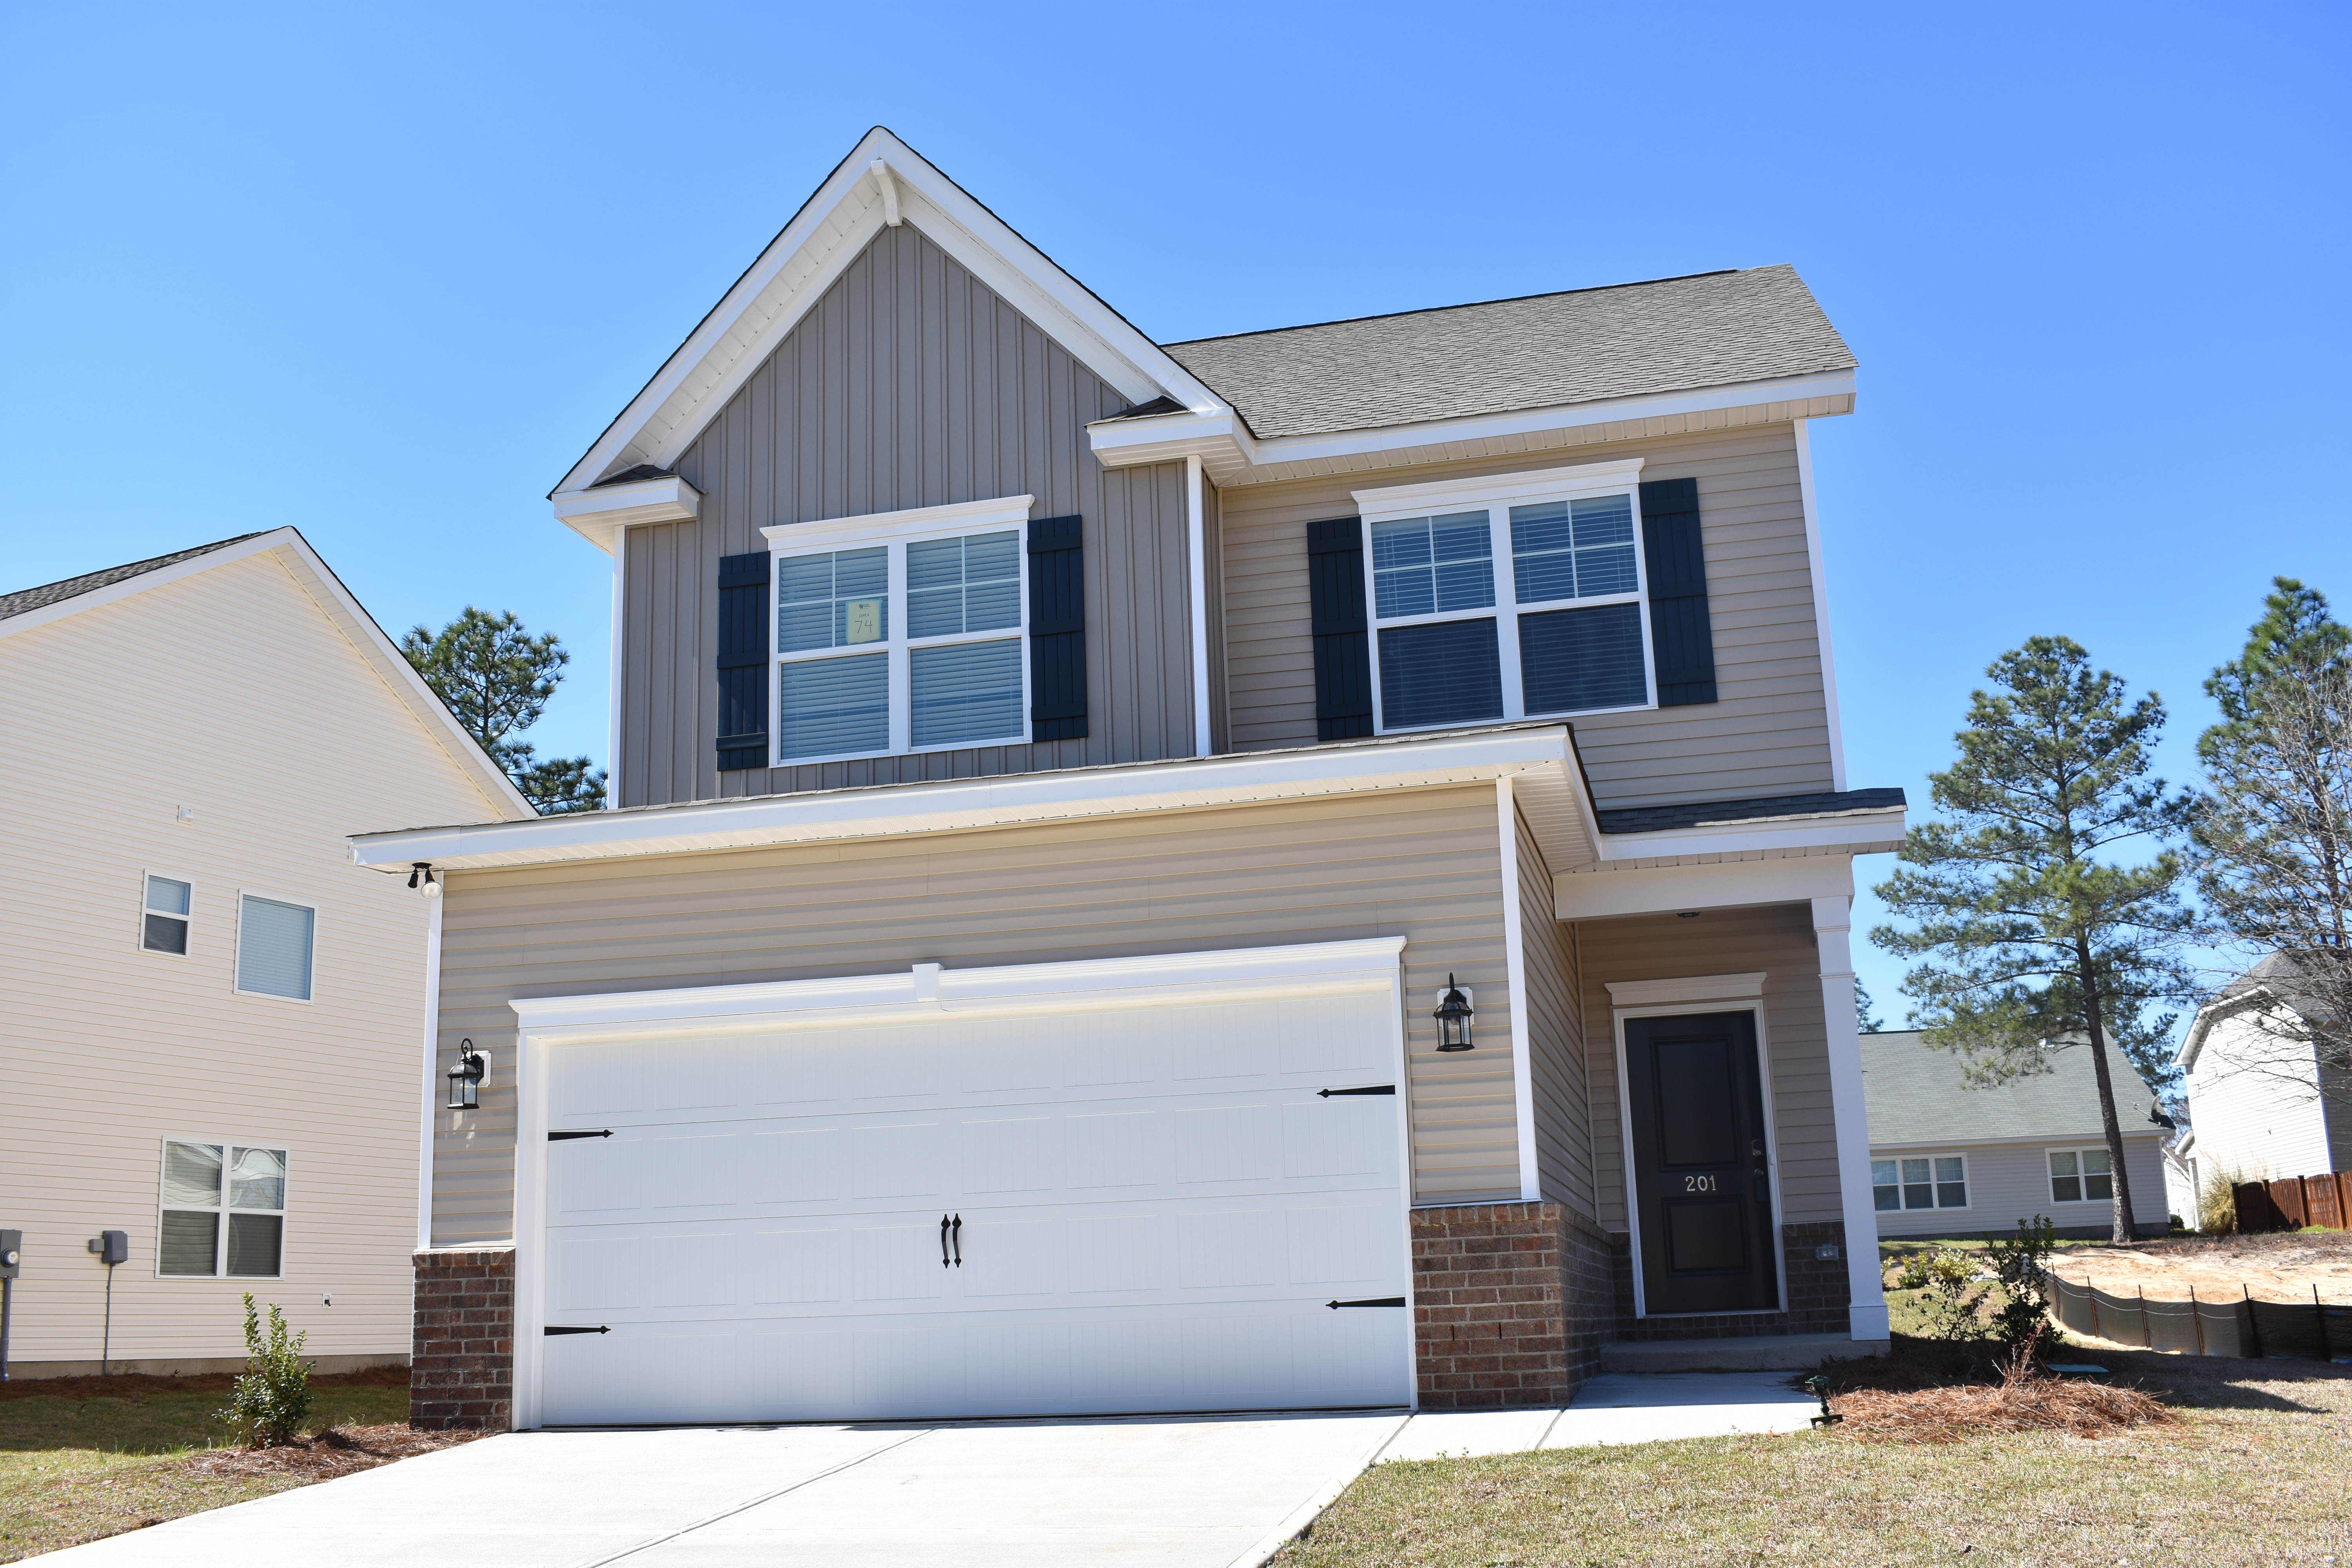 New Construction Homes for Sale in Lake Carolina Pinnacle Ridge